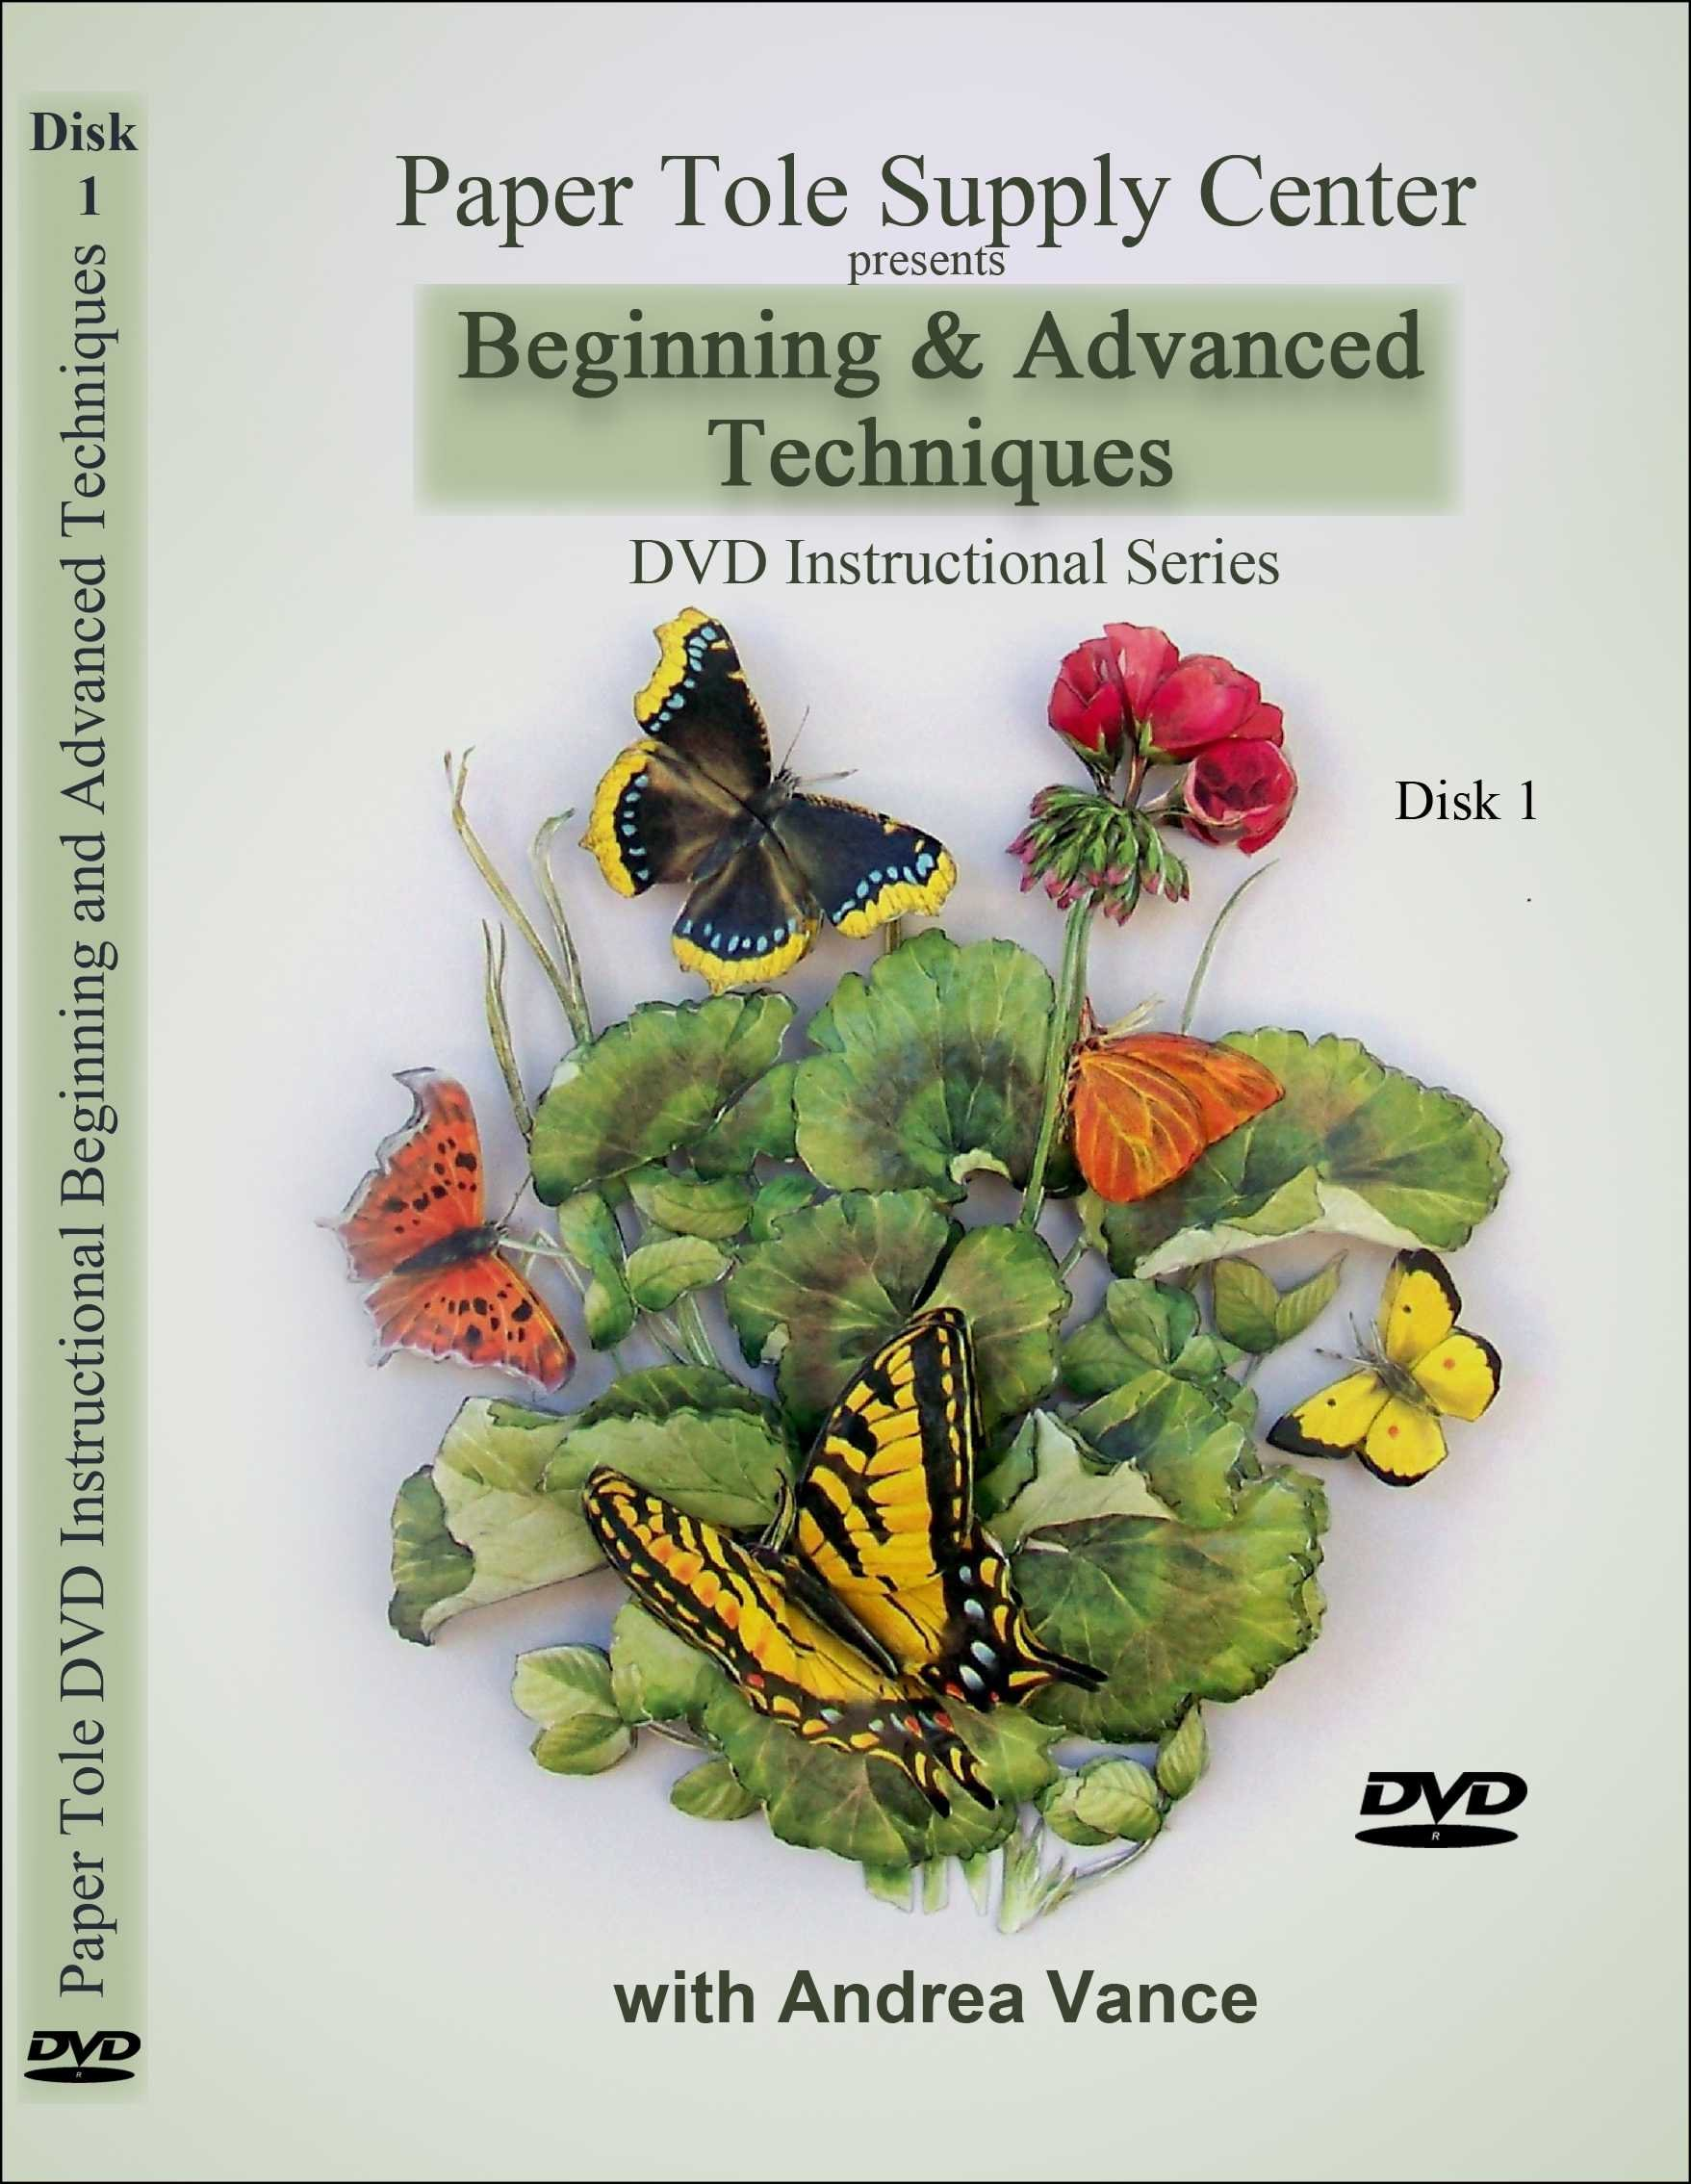 Learn Paper Tole DVD 1 Beginning & Advanced Techniques with Andrea Vance